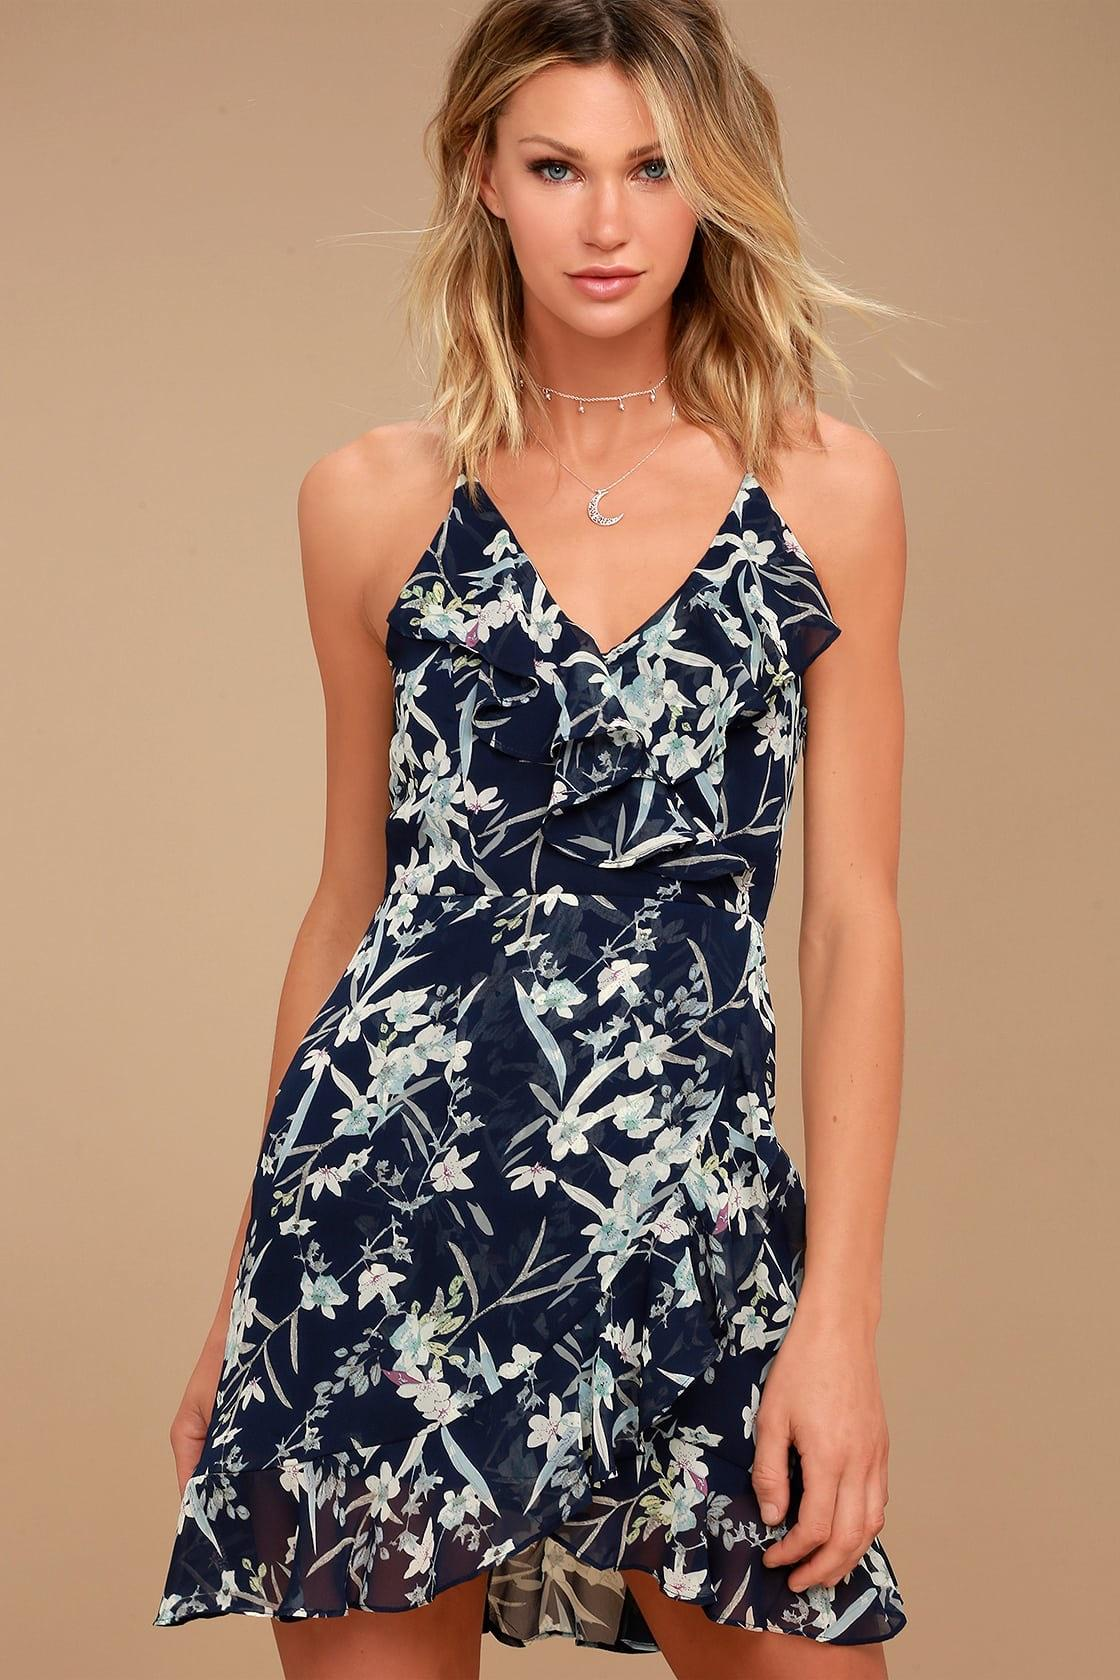 Choose a light and comfortable summer dress to shine on vacation in the summer season